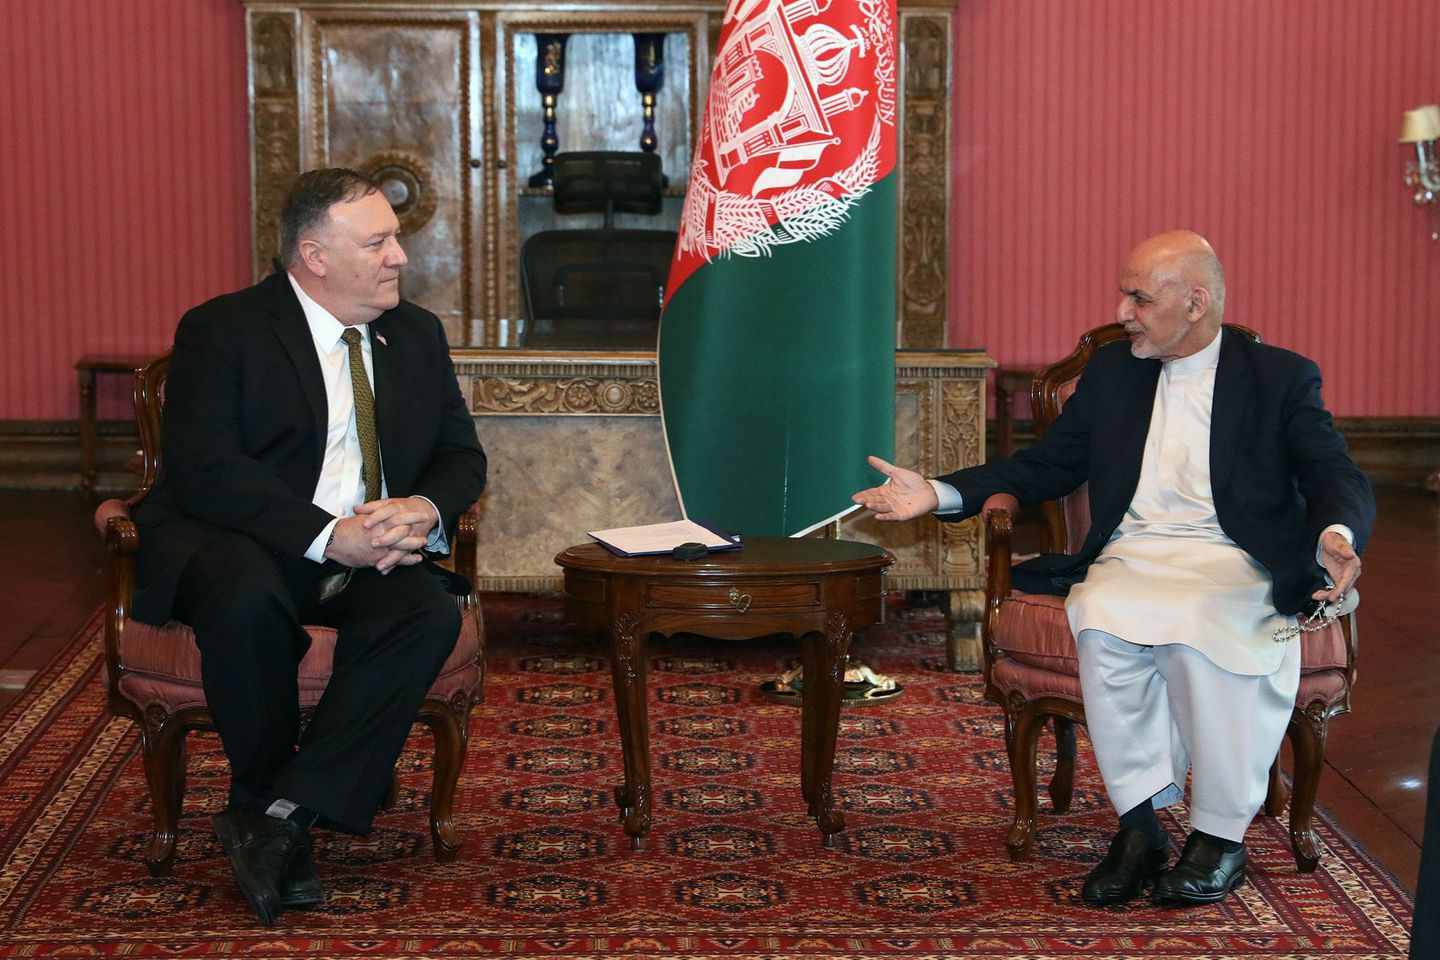 Secretary of State Mike Pompeo met with Afghanistan's President Ashraf Ghani during an urgent visit to Kabul Monday aimed at saving the fragile US-engineered peace deal with the Taliban.